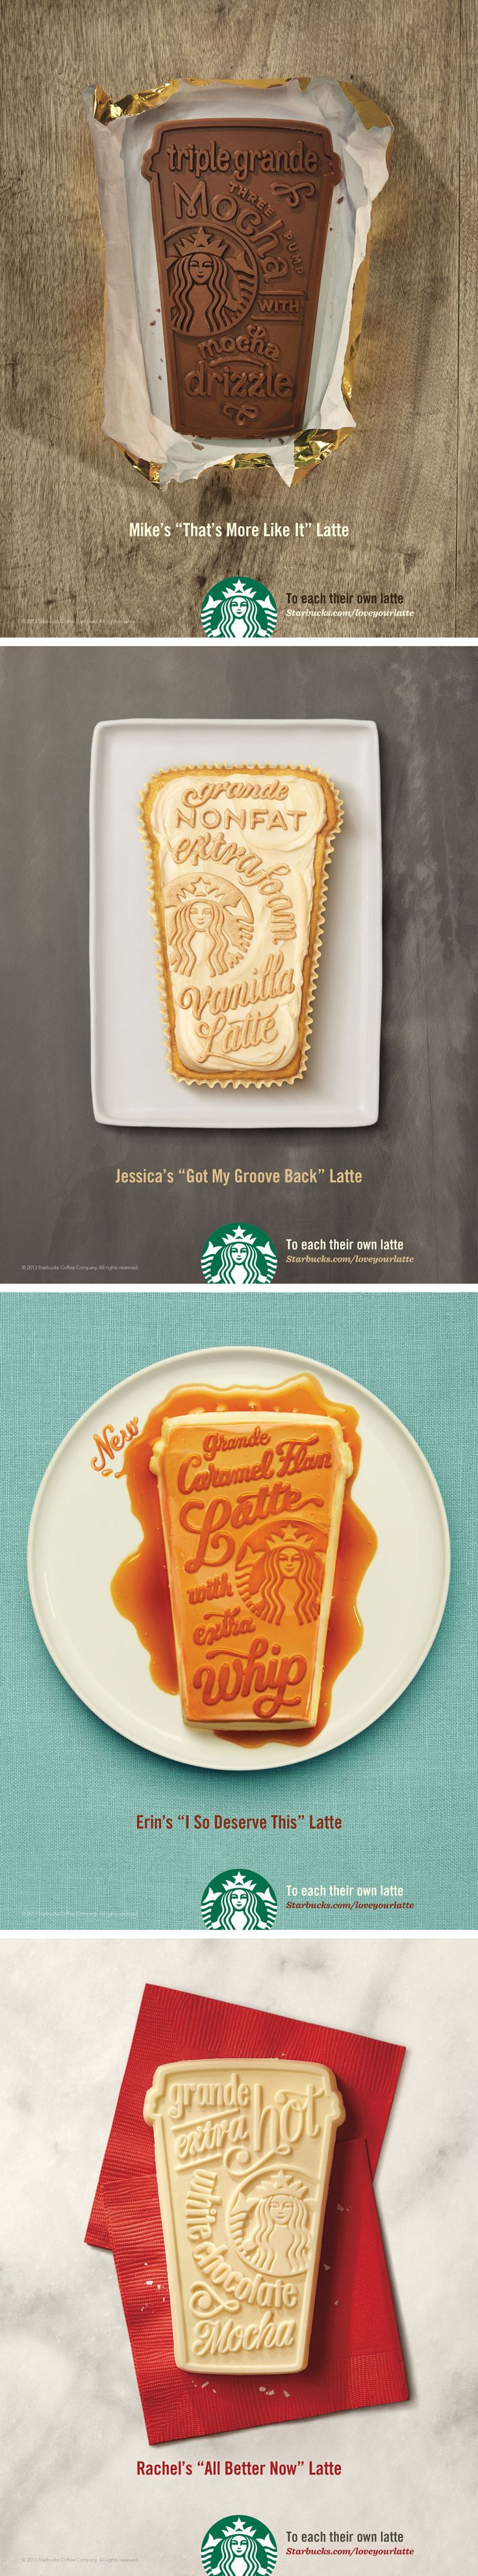 Starbucks advertisements. By Jessica Hische